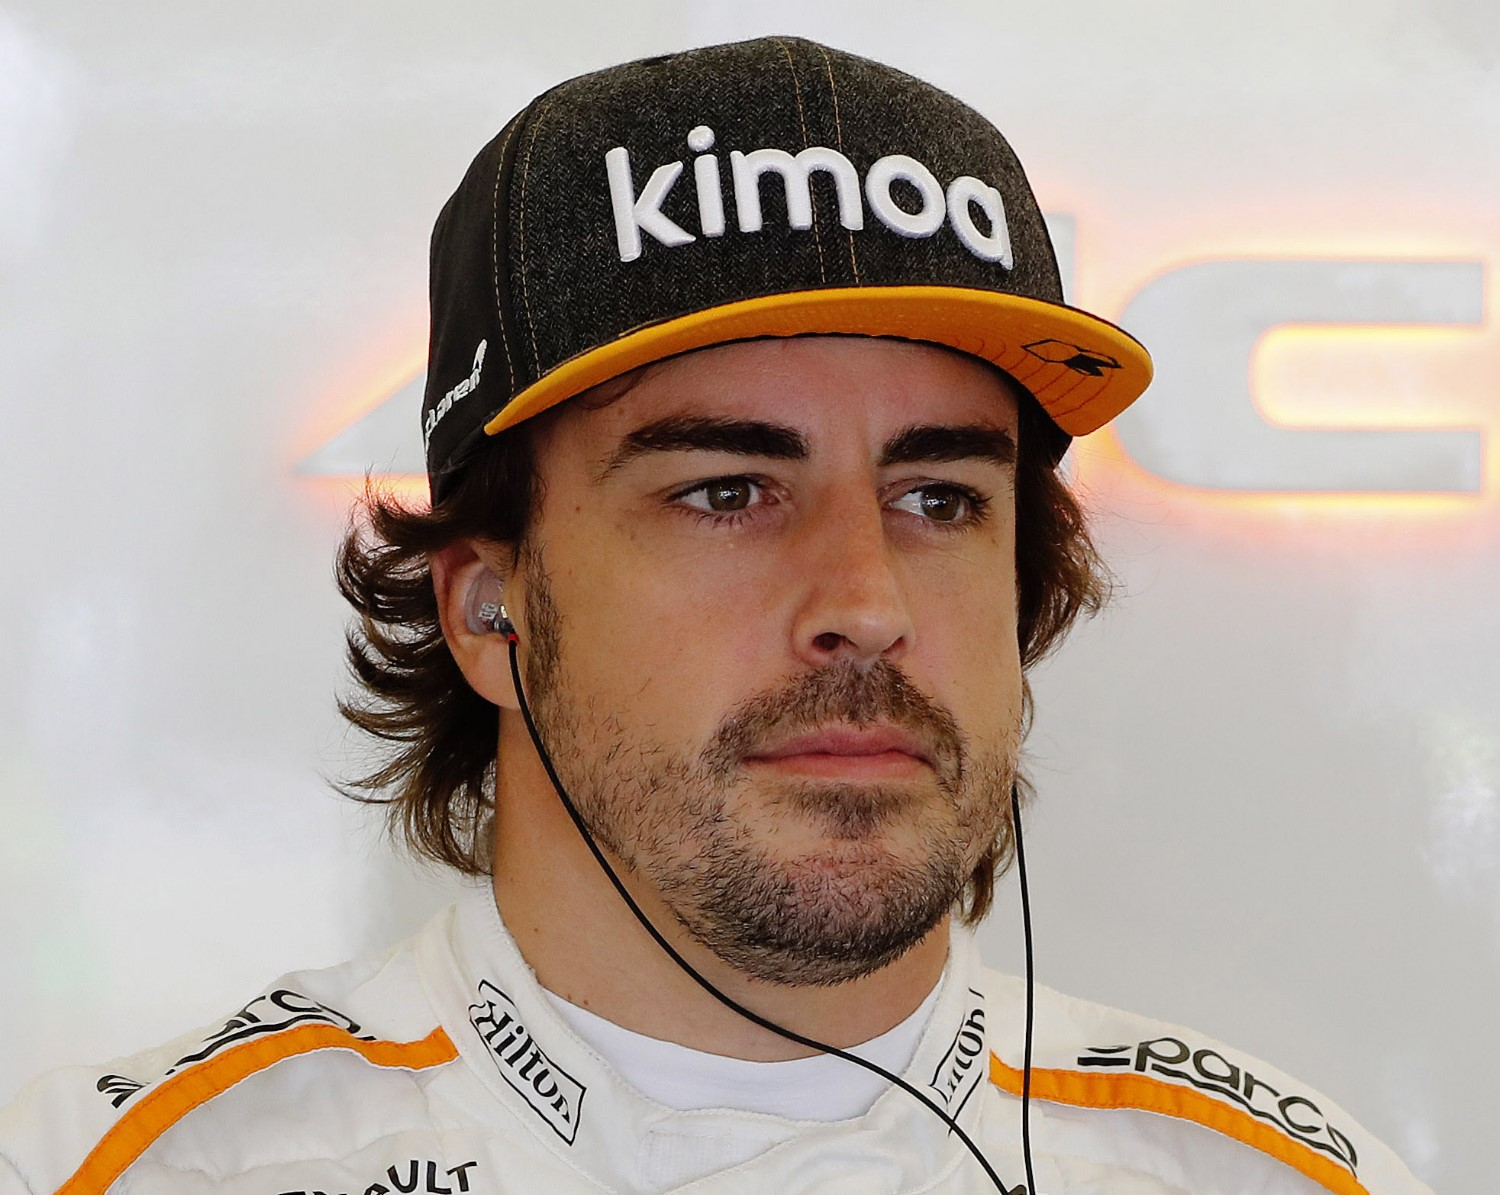 In F1 the car is 99% and driver 1%. With McLaren Alonso had 0.00% chance to win races